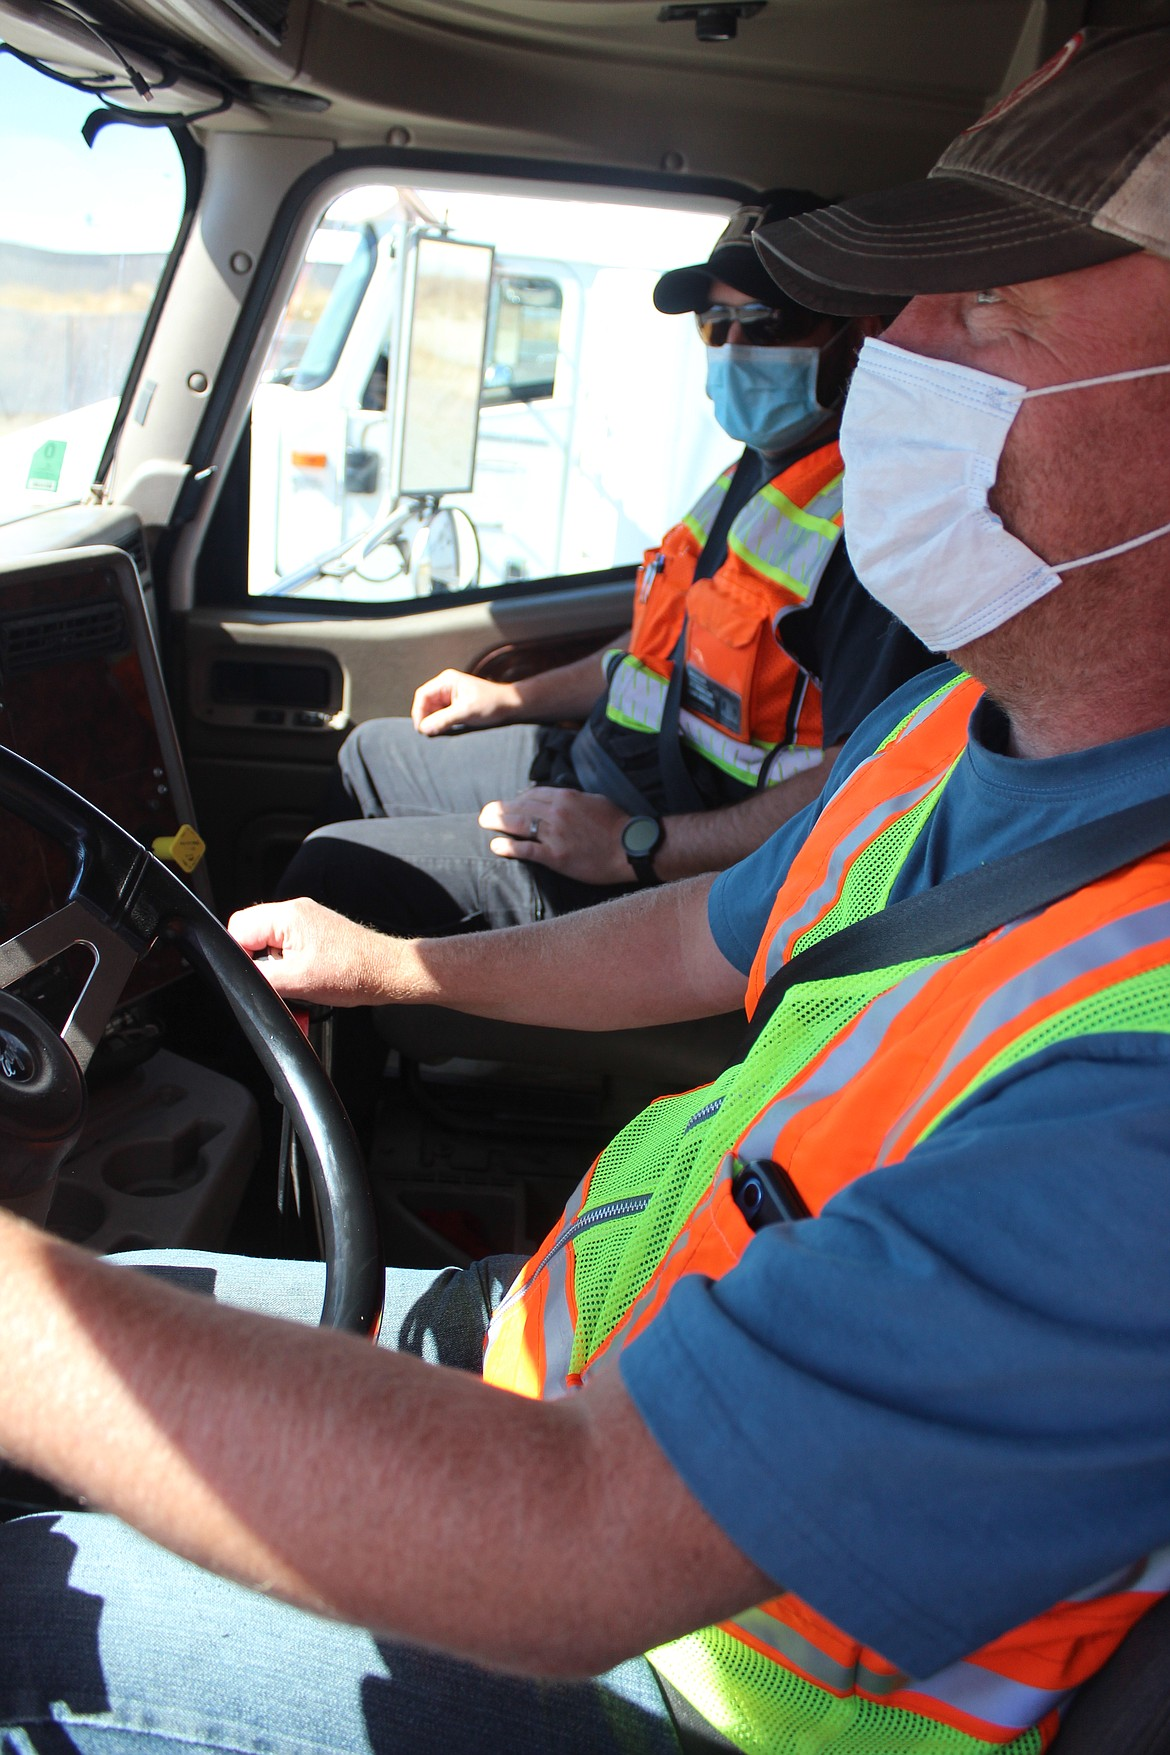 Bruce Nordstrom (foreground), of Coeur d'Alene, learns gear shifting in the cab from North Idaho College/Drive509 CDL Instructor Josh Munderloh. Wearing masks while inside the cab allows the course to be taught safely and in accordance with state guidelines.